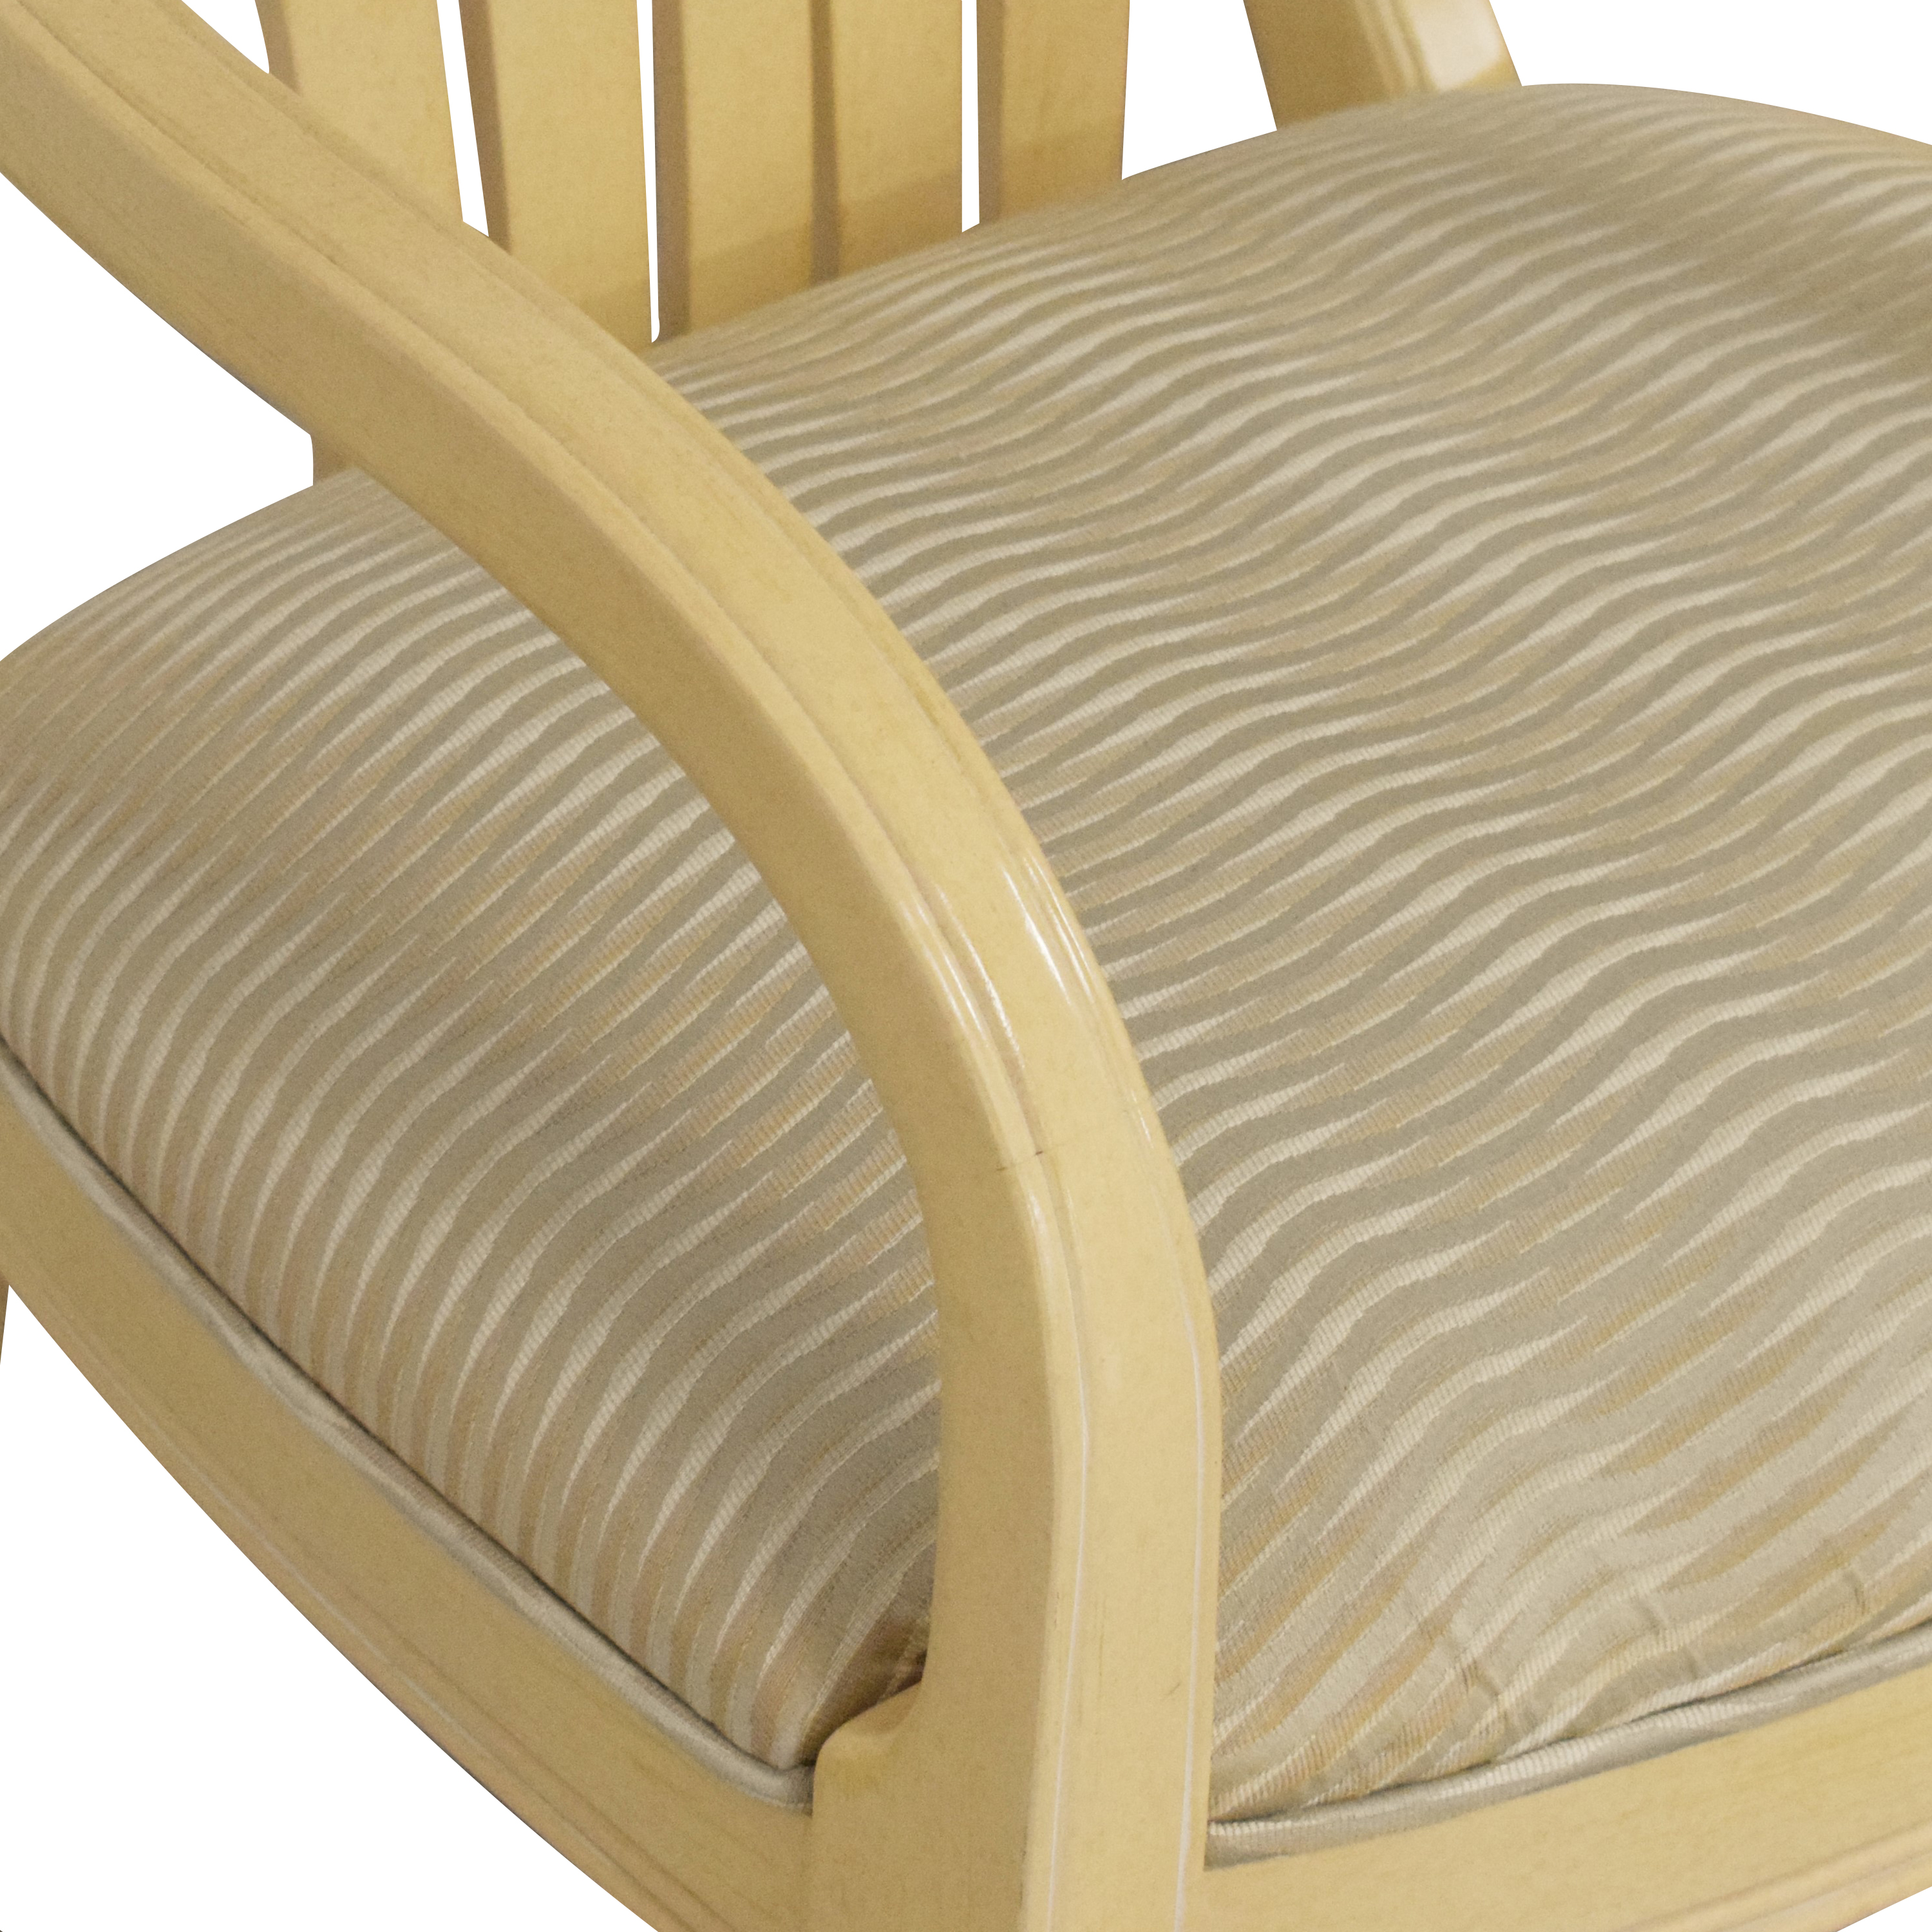 Century Furniture Century Furniture Upholstered Dining Chairs cream and beige